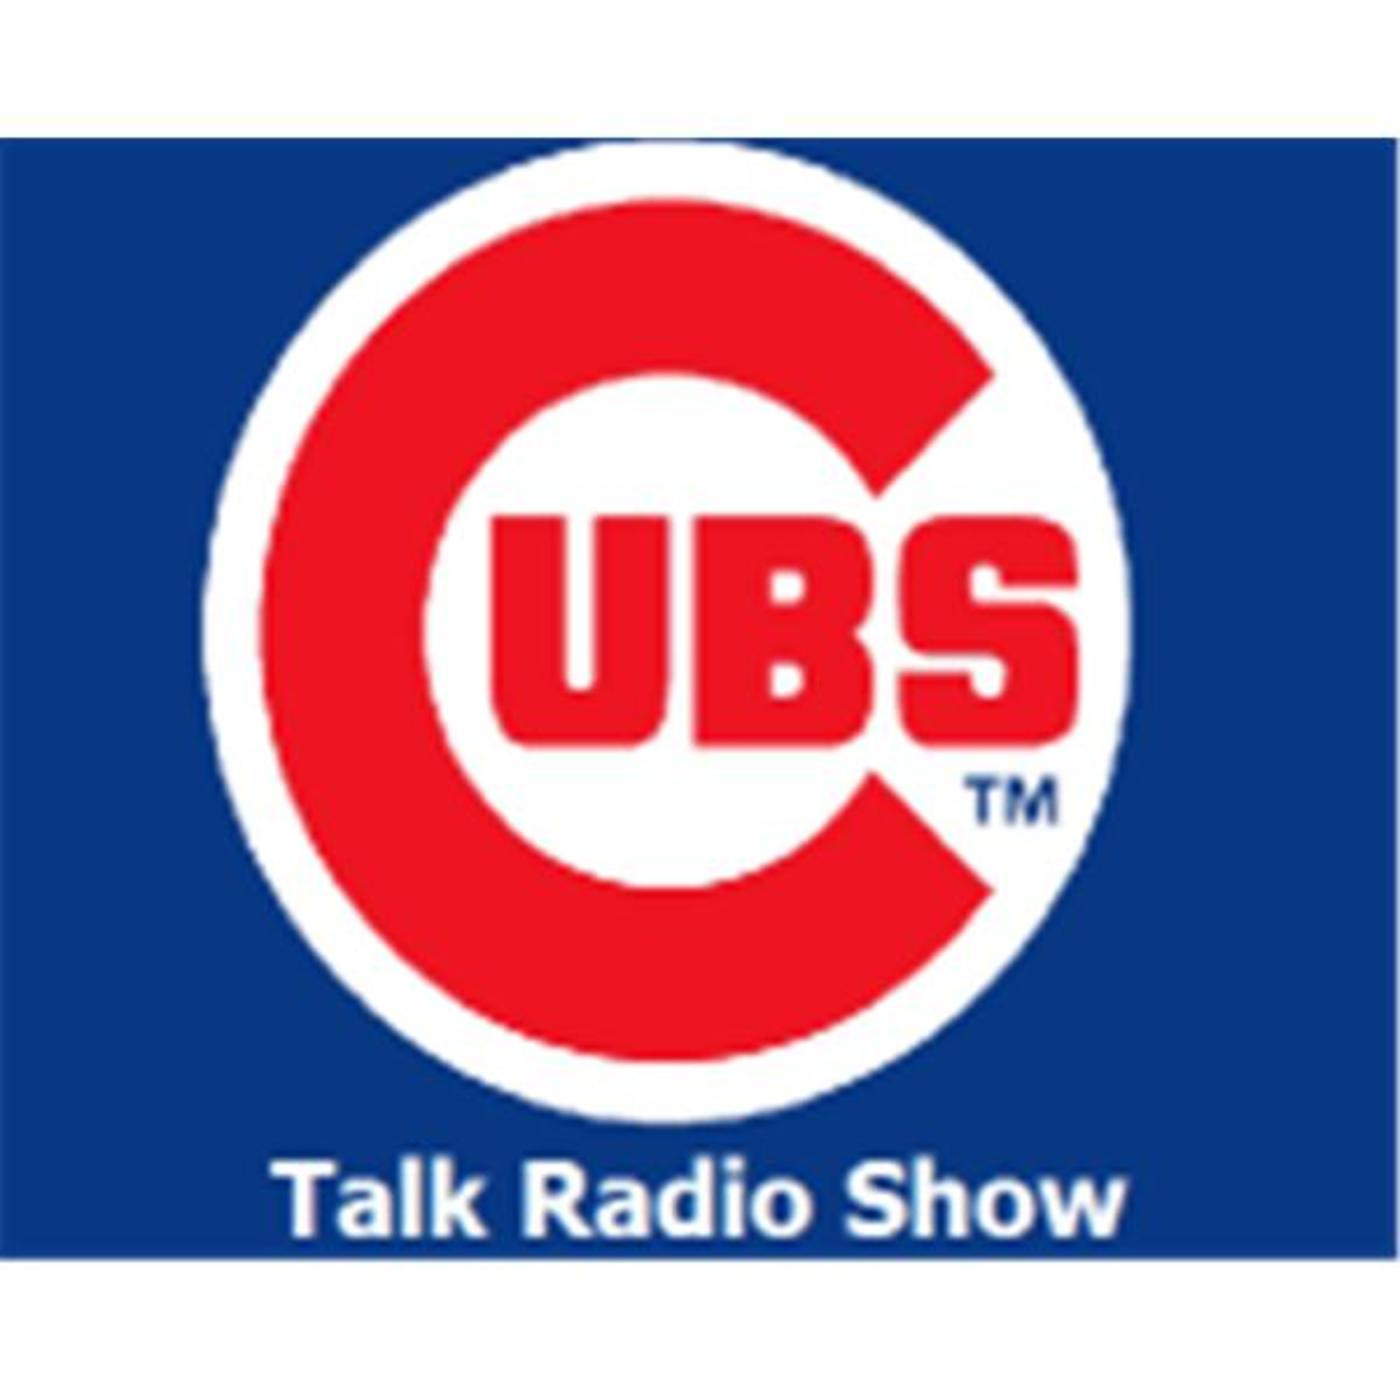 Cubs Talk Radio